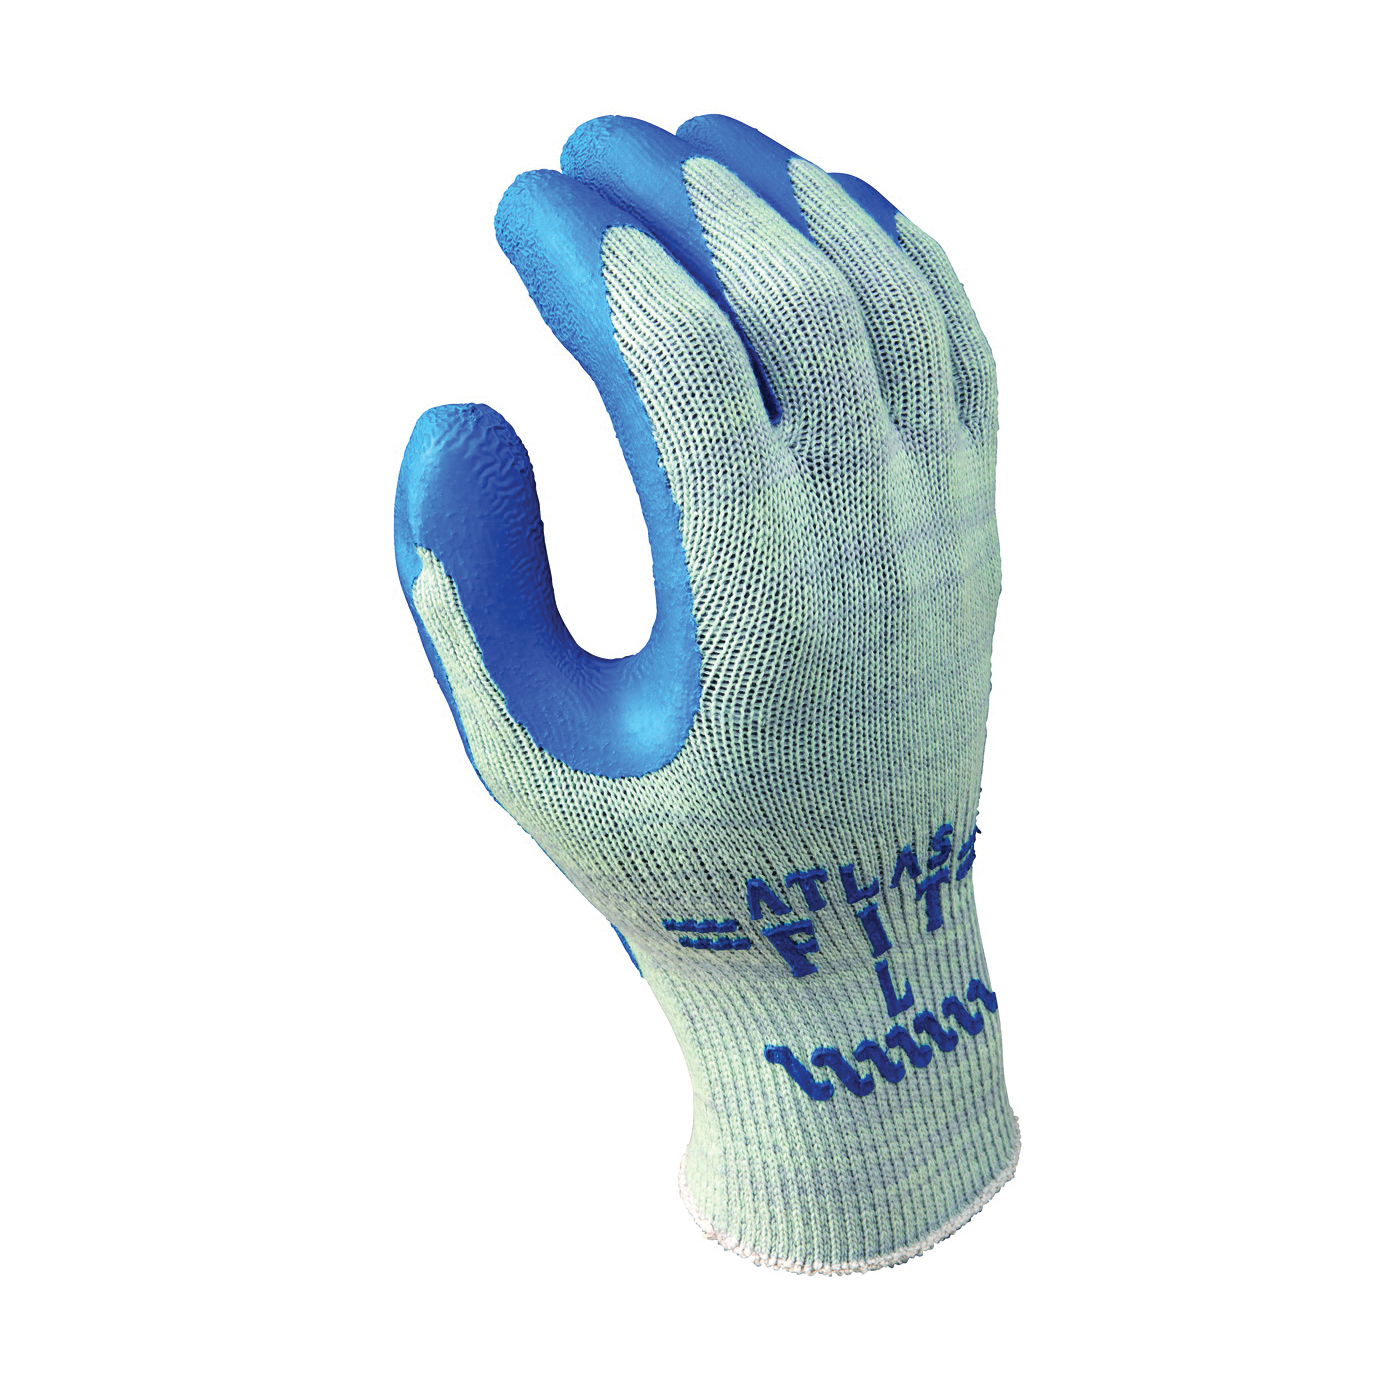 Picture of ATLAS 300L-09.RT Industrial Gloves, L, Knit Wrist Cuff, Natural Rubber Coating, Blue/Light Gray